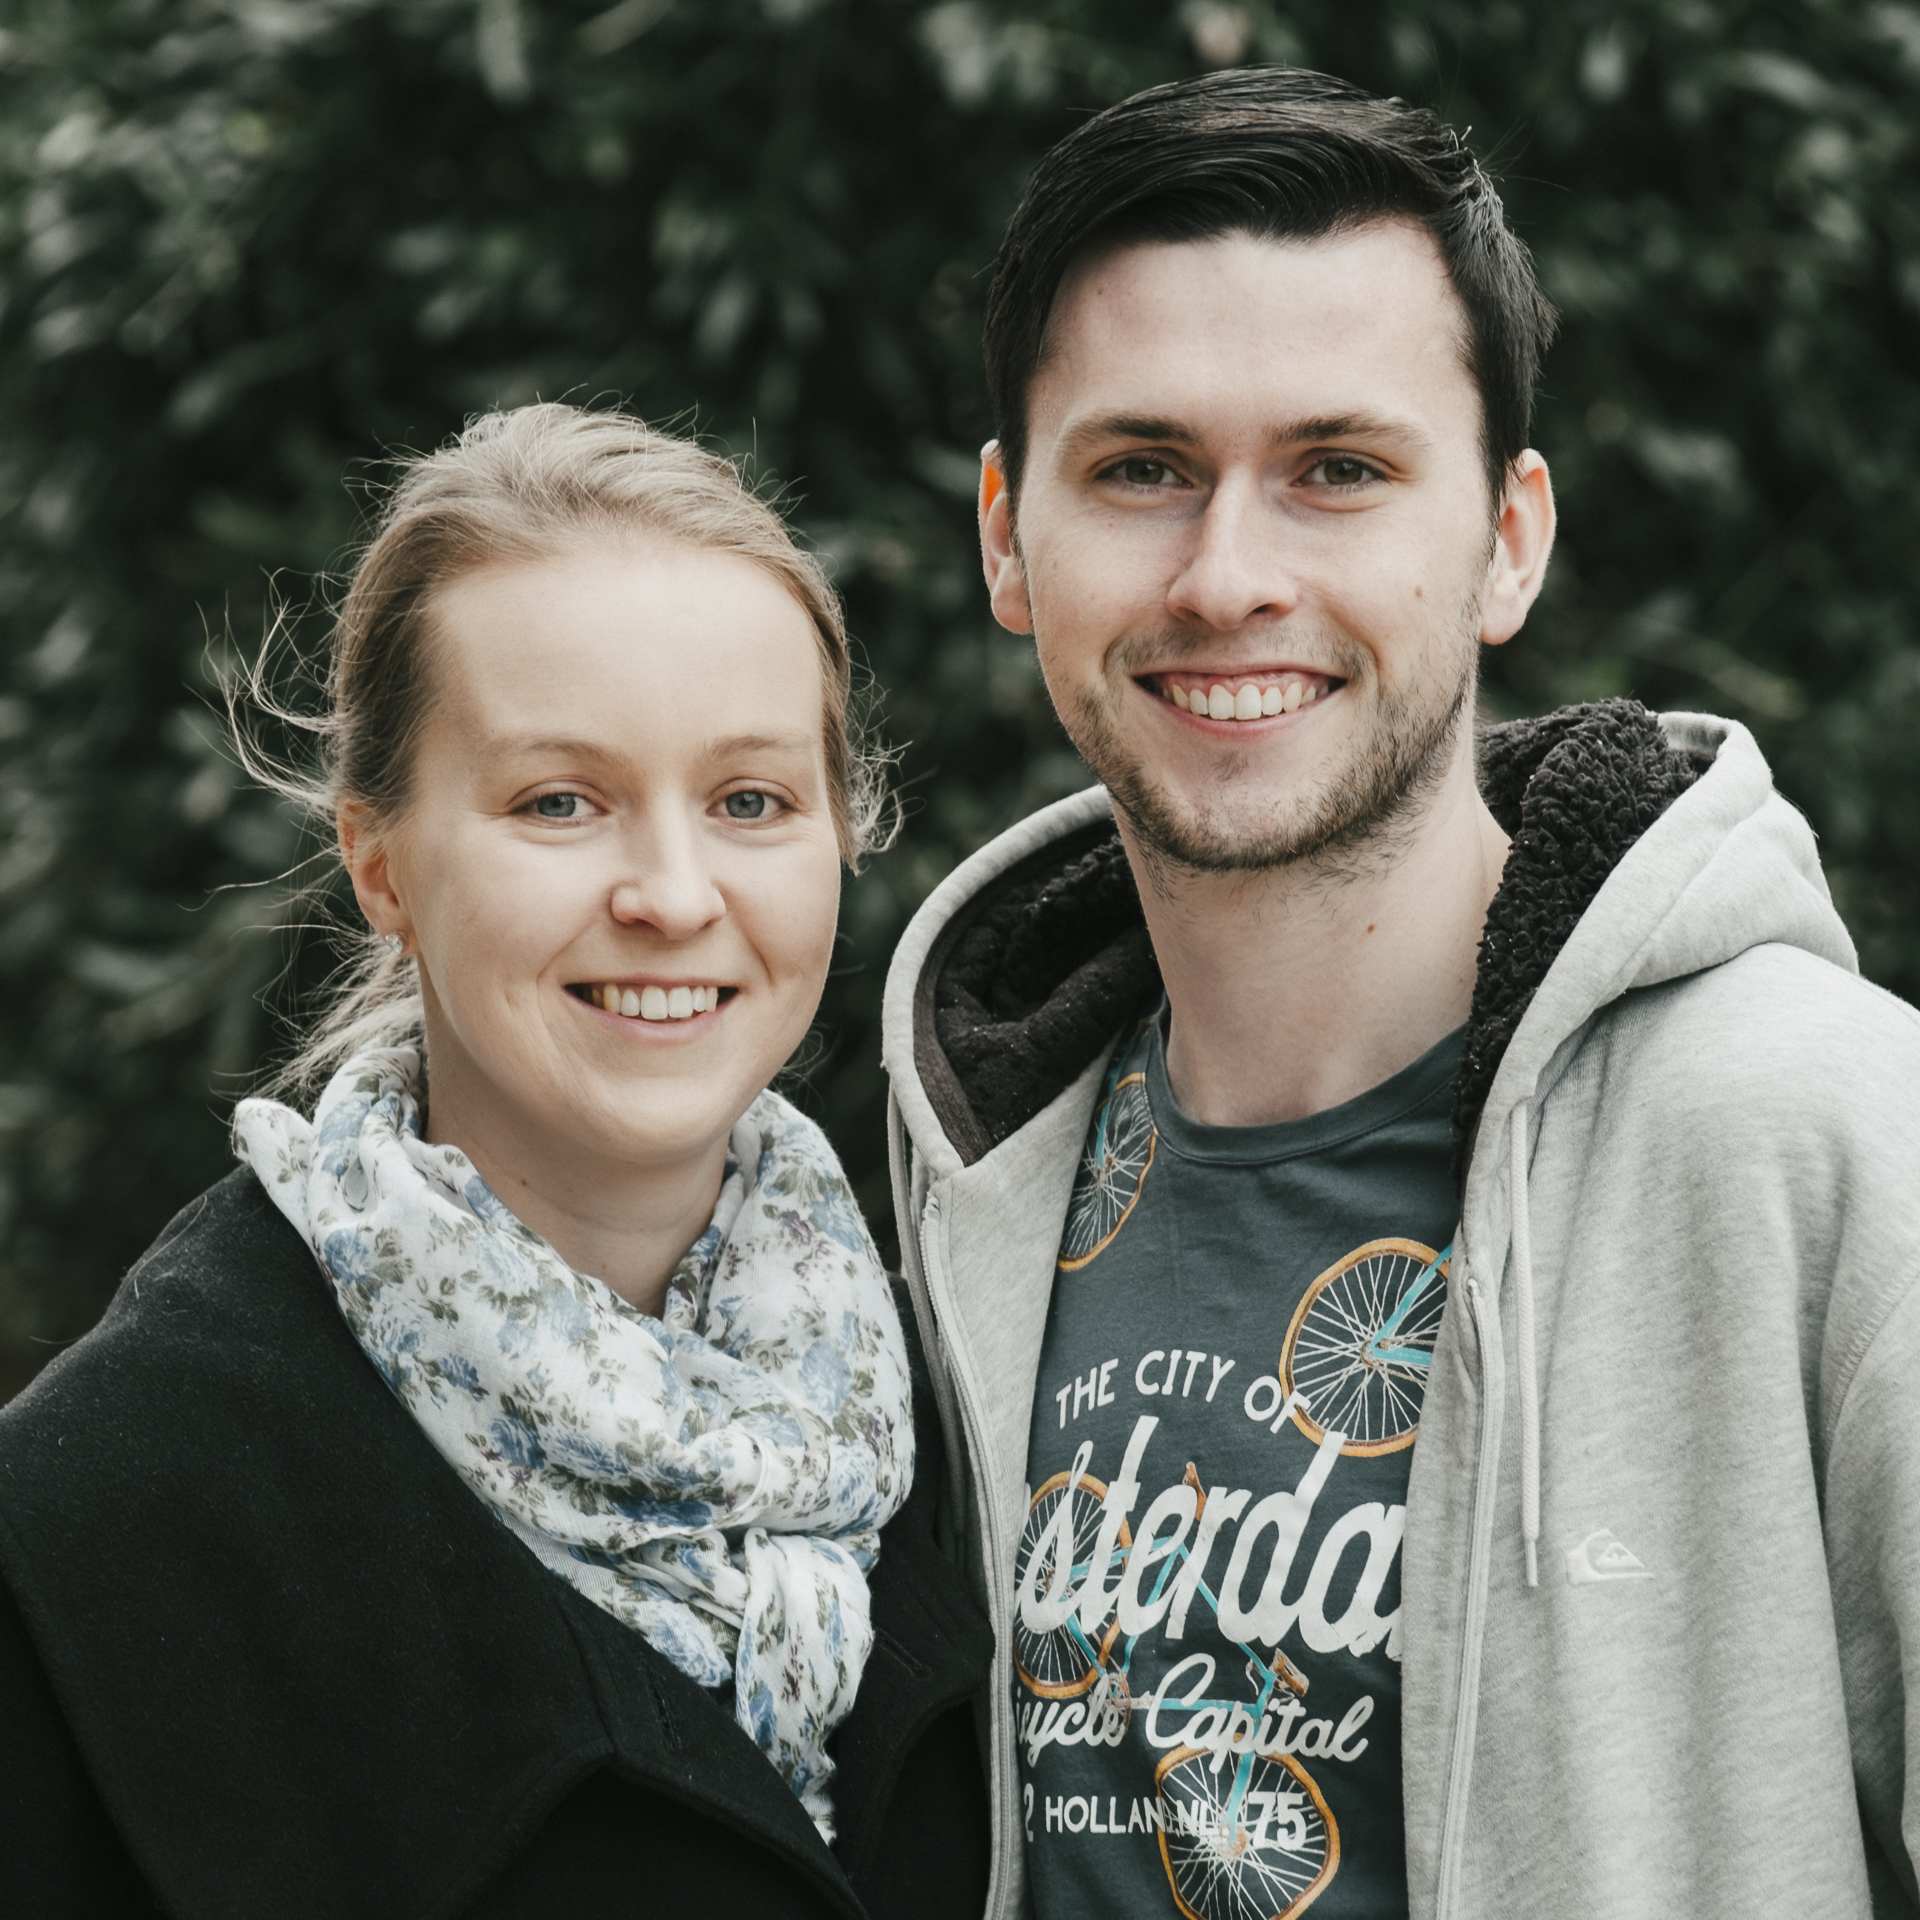 Jacob & Hayley Snook   Jacob and Hayley lead one of our Connect Groups as well as 4 Twelve, our Friday evening program specifically for those aged 13-25.  Hayley is also a gifted administrator who runs many of our events locally and assists nationally as required.